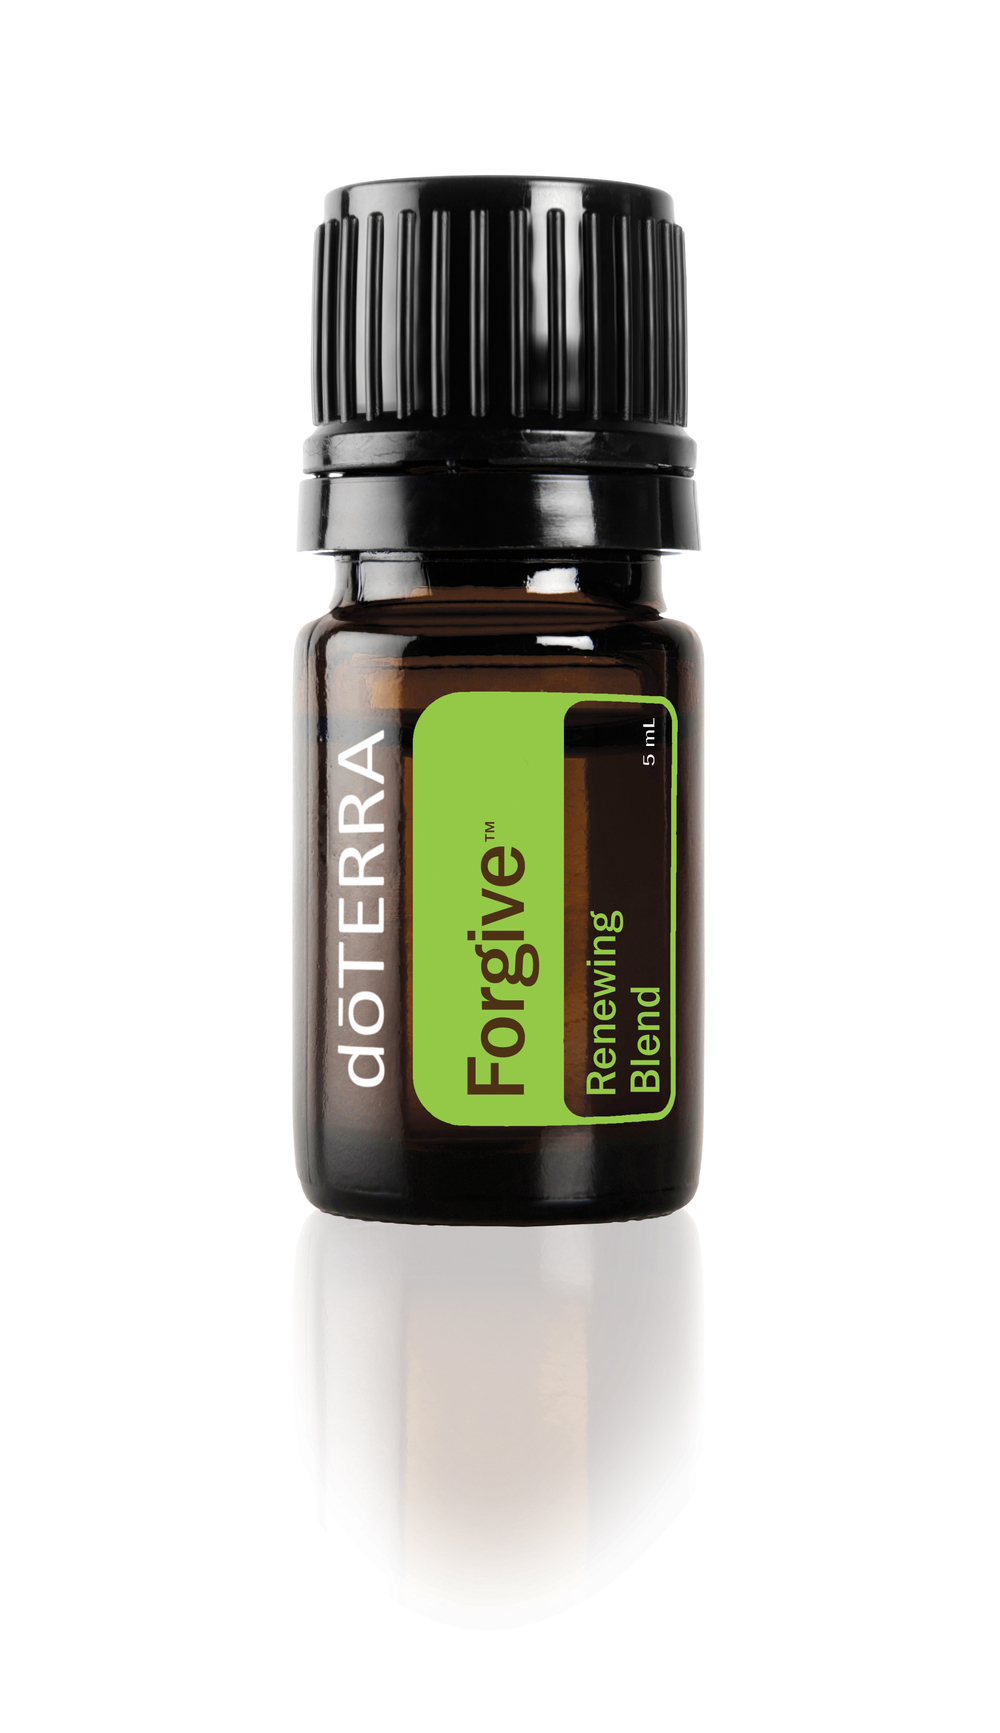 Forgive Renewing Essential Oils Blend